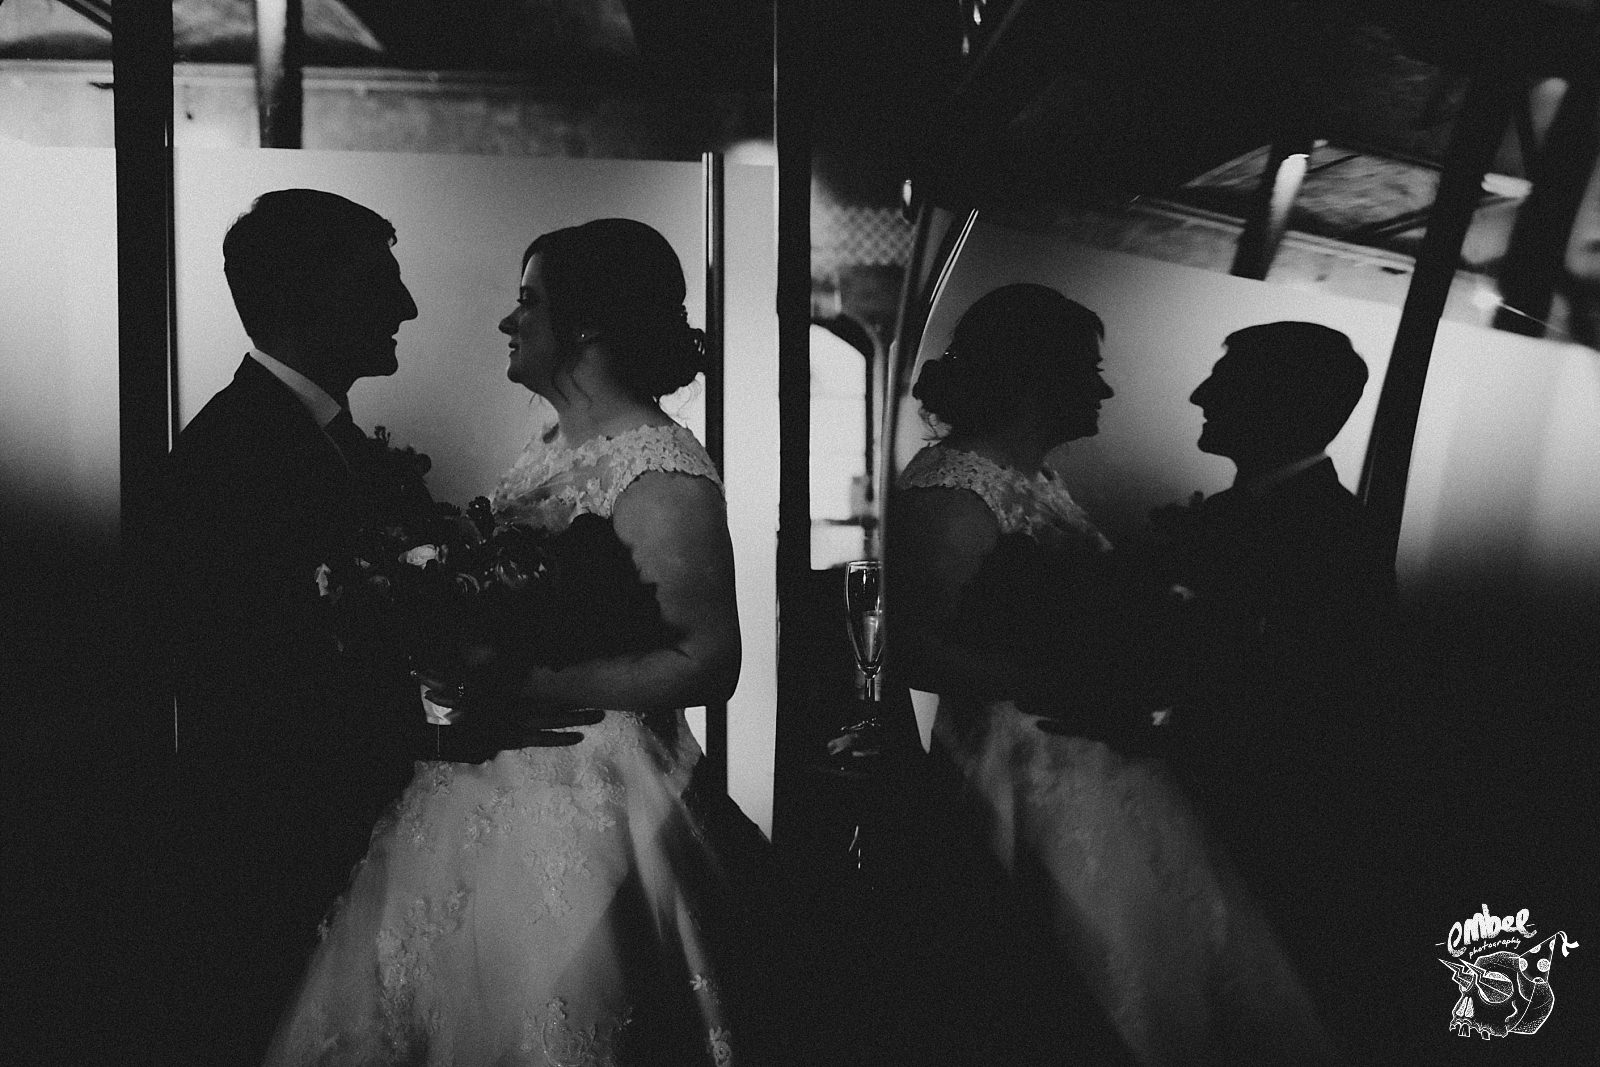 artistic shot of bride and groom with reflections